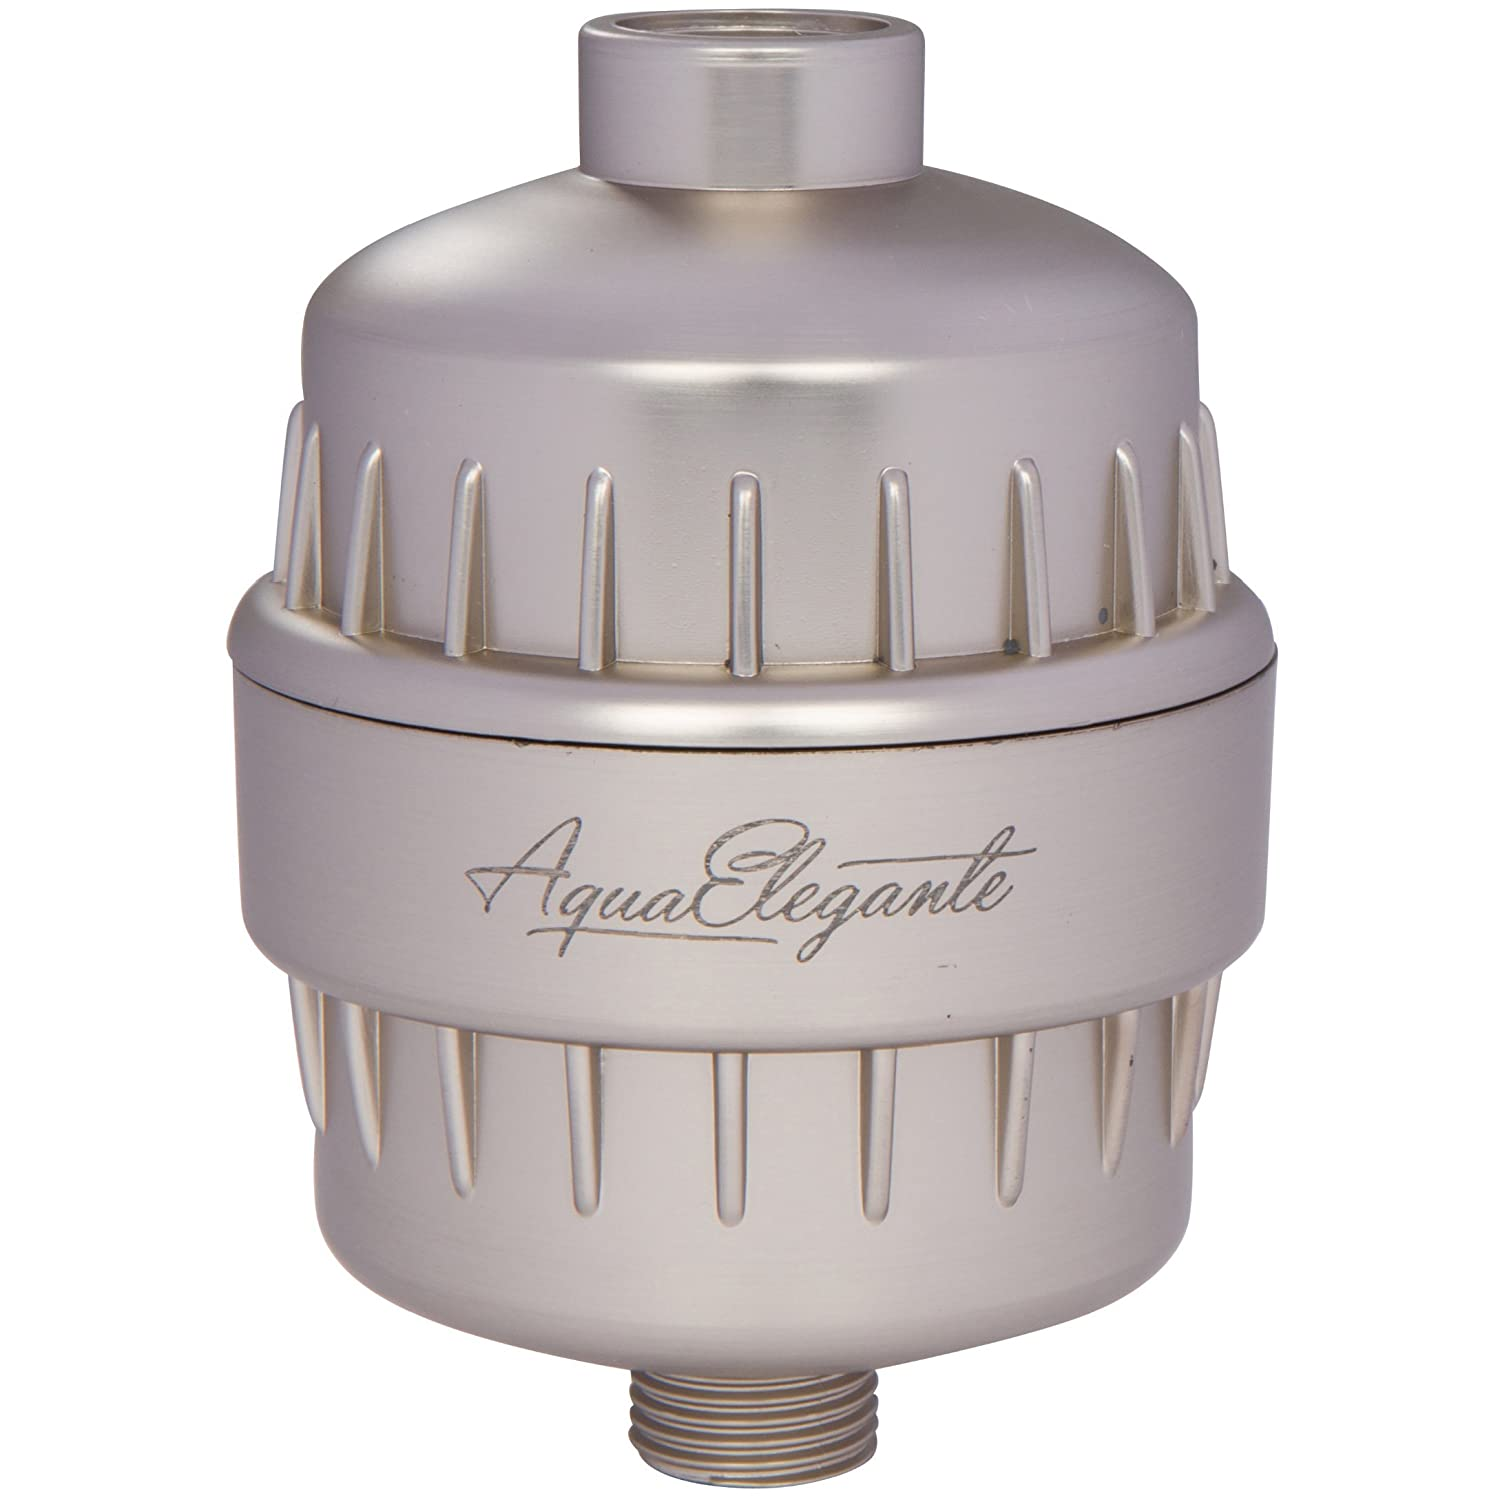 Aqua Elegante High Output Luxury Shower Filter - Best Chlorine Removing Filtration System & Cartridge - Chrome Holekamp Products LLC COMIN16JU035750